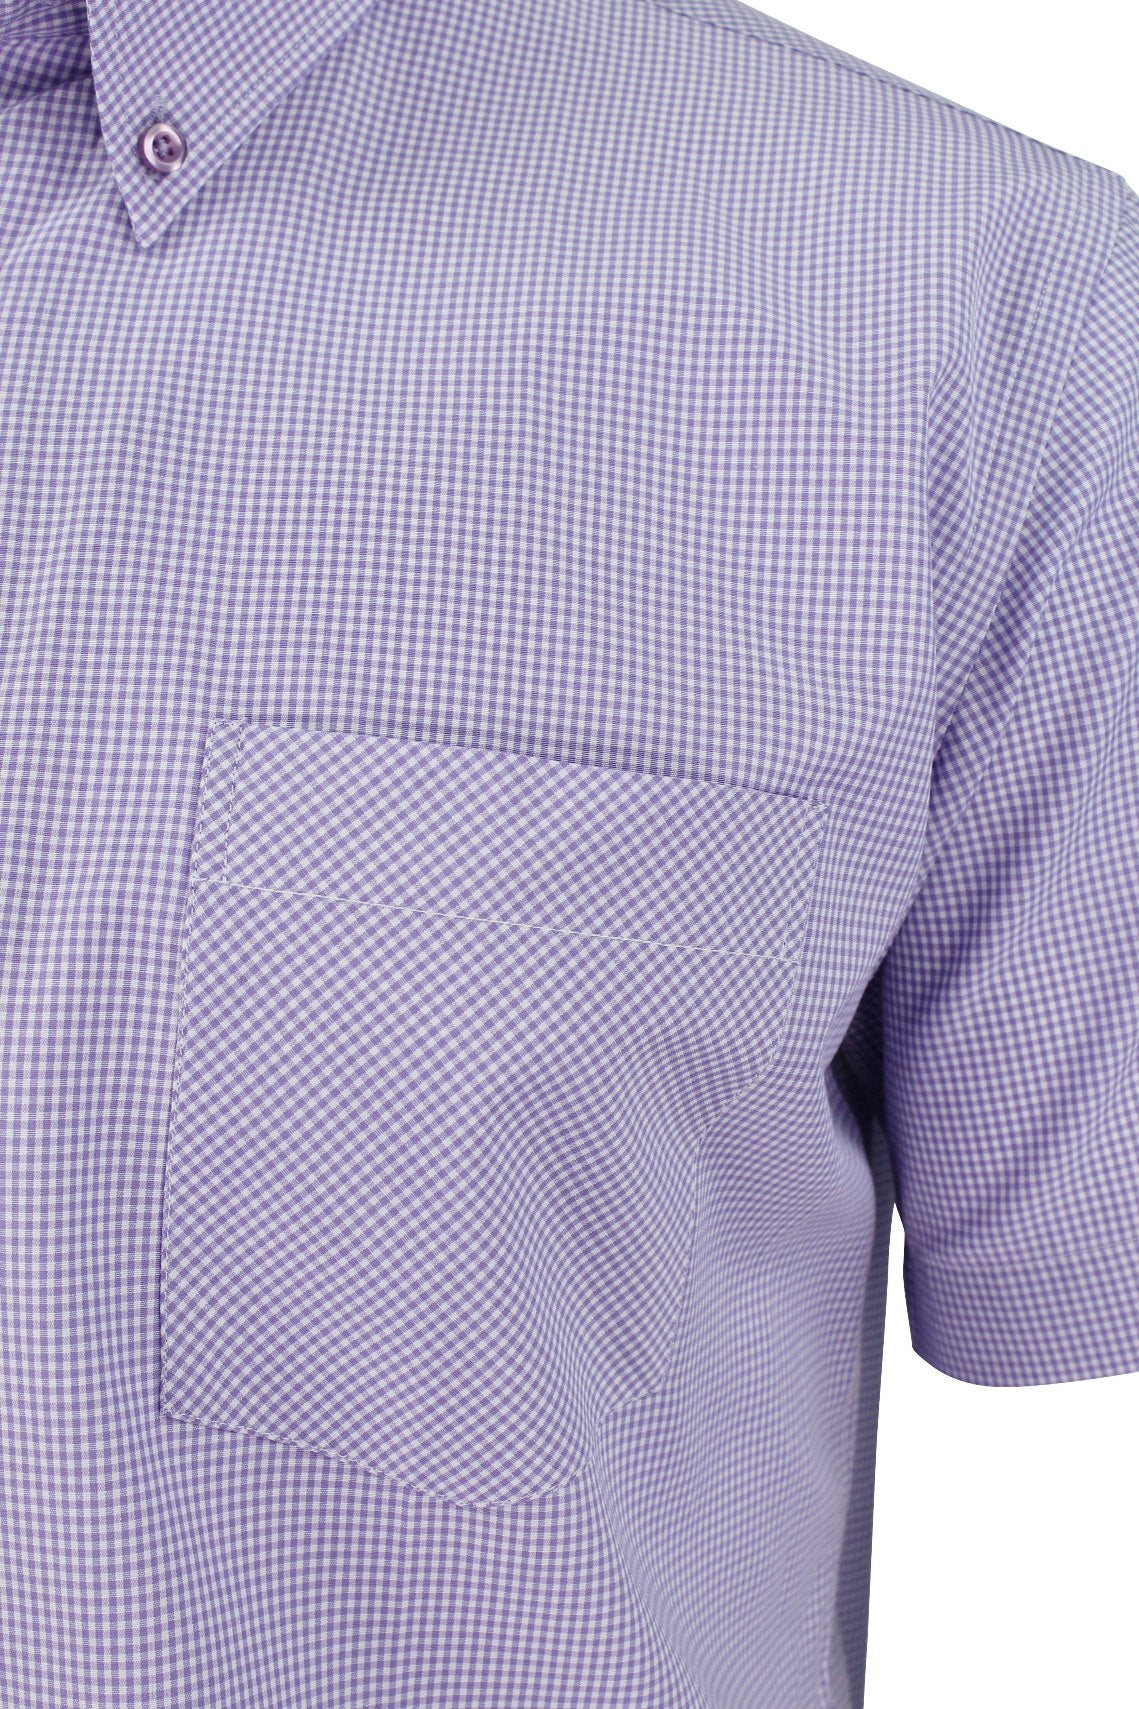 Mens Short Sleeved Shirt by Xact Clothing Micro Gingham Check-2